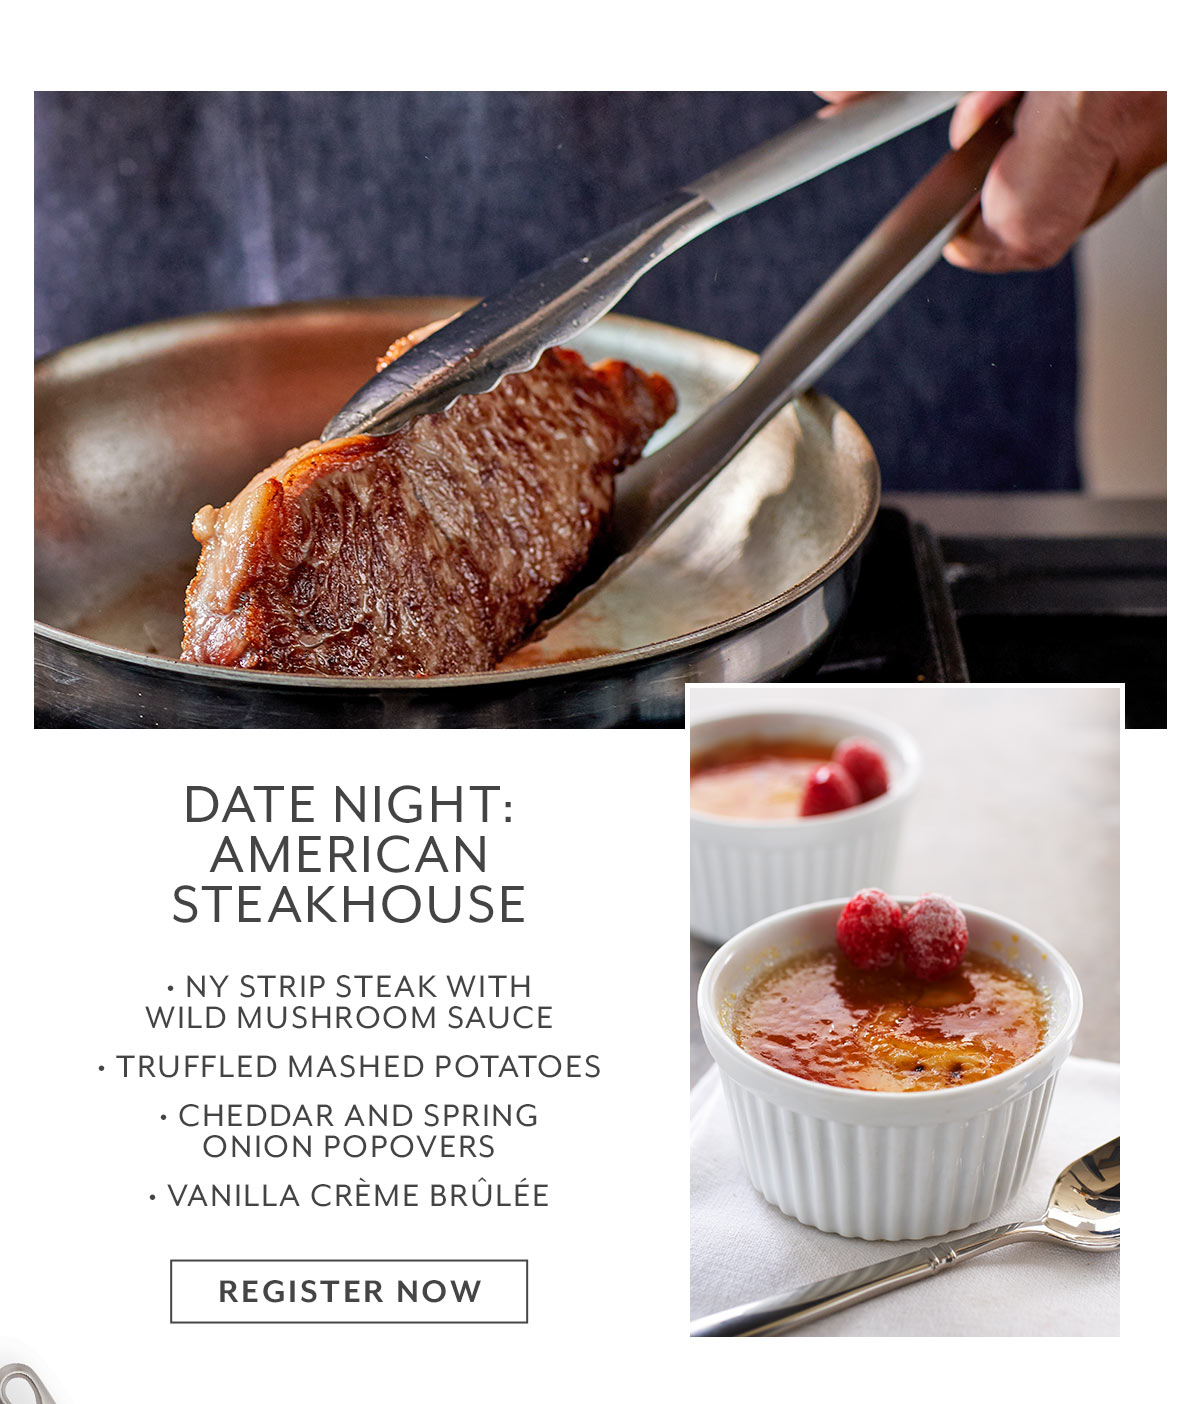 Class: Date Night • American Steakhouse